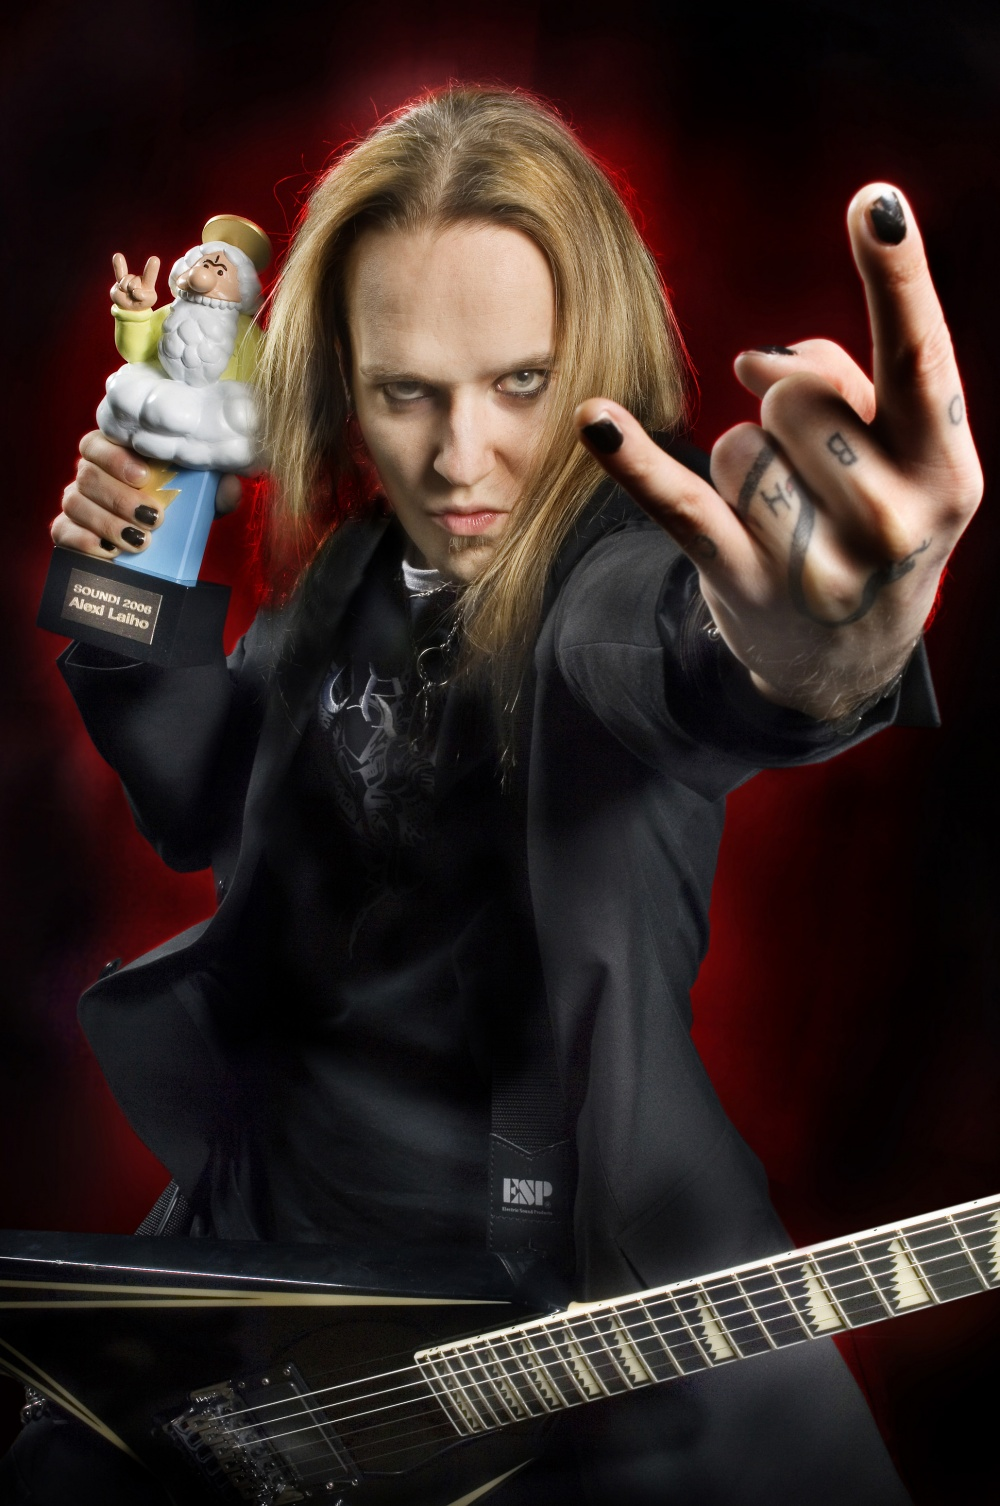 List of guitars - Wikipedia Alexi laiho old pictures